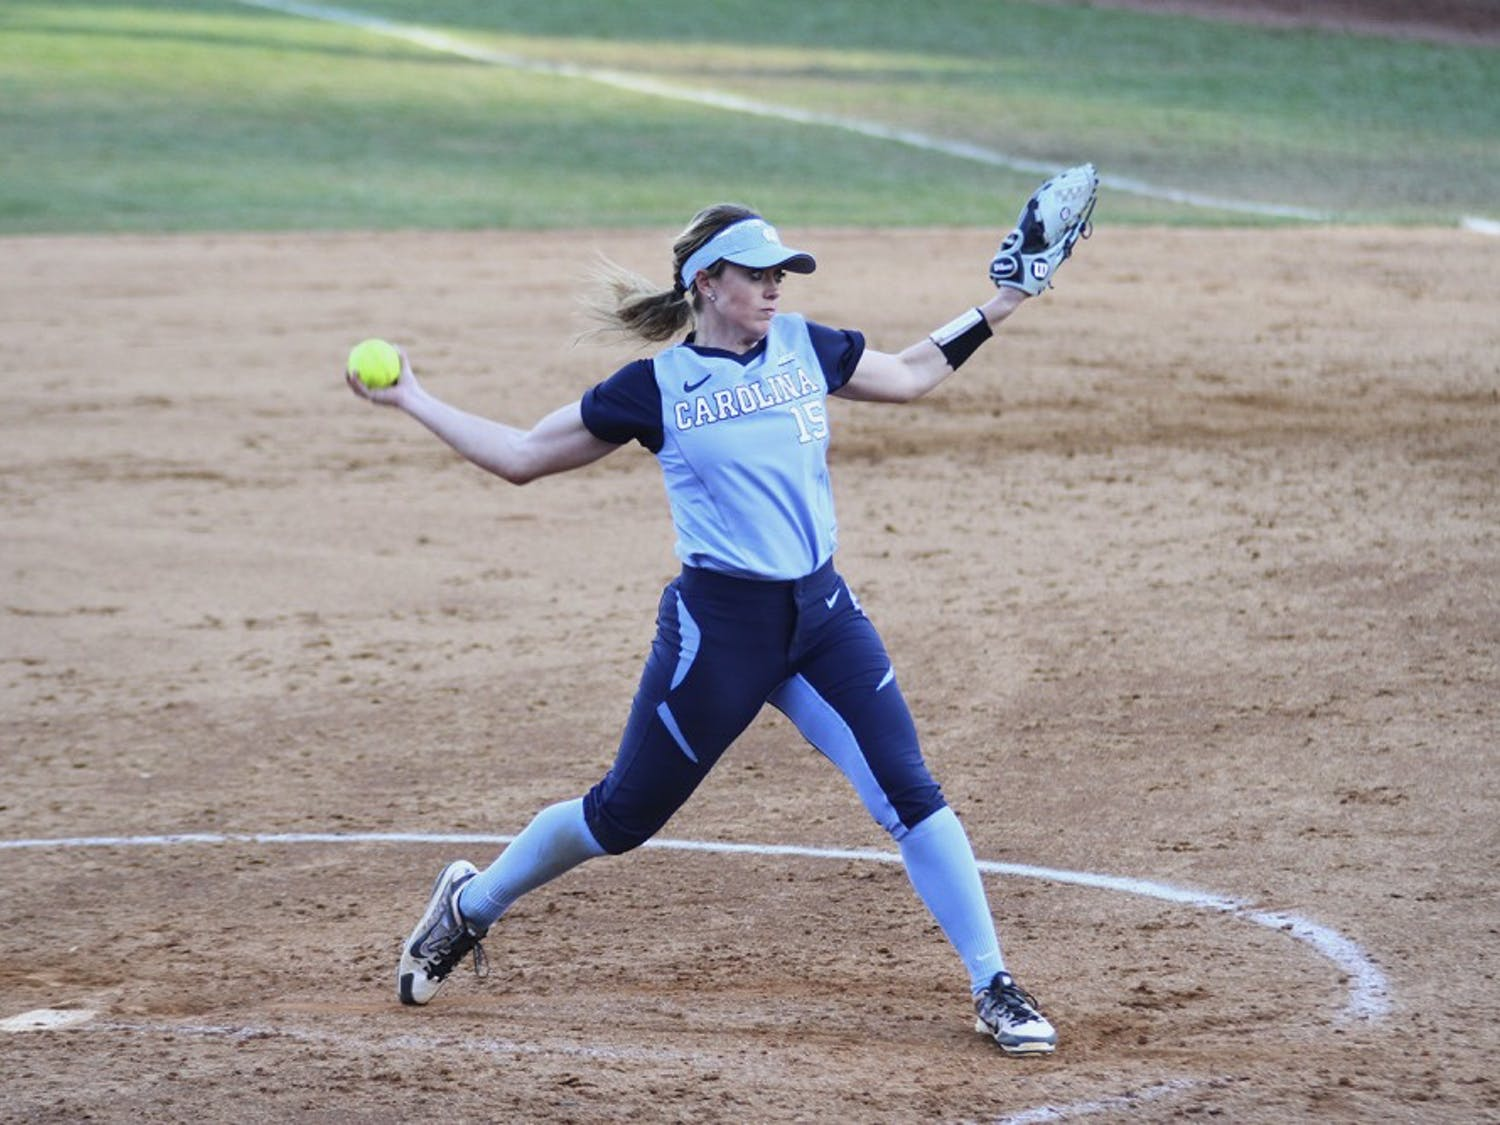 Kendra Lynch throws a pitch during North Carolina's 8-0 shutout against Georgetown on Feb. 28.